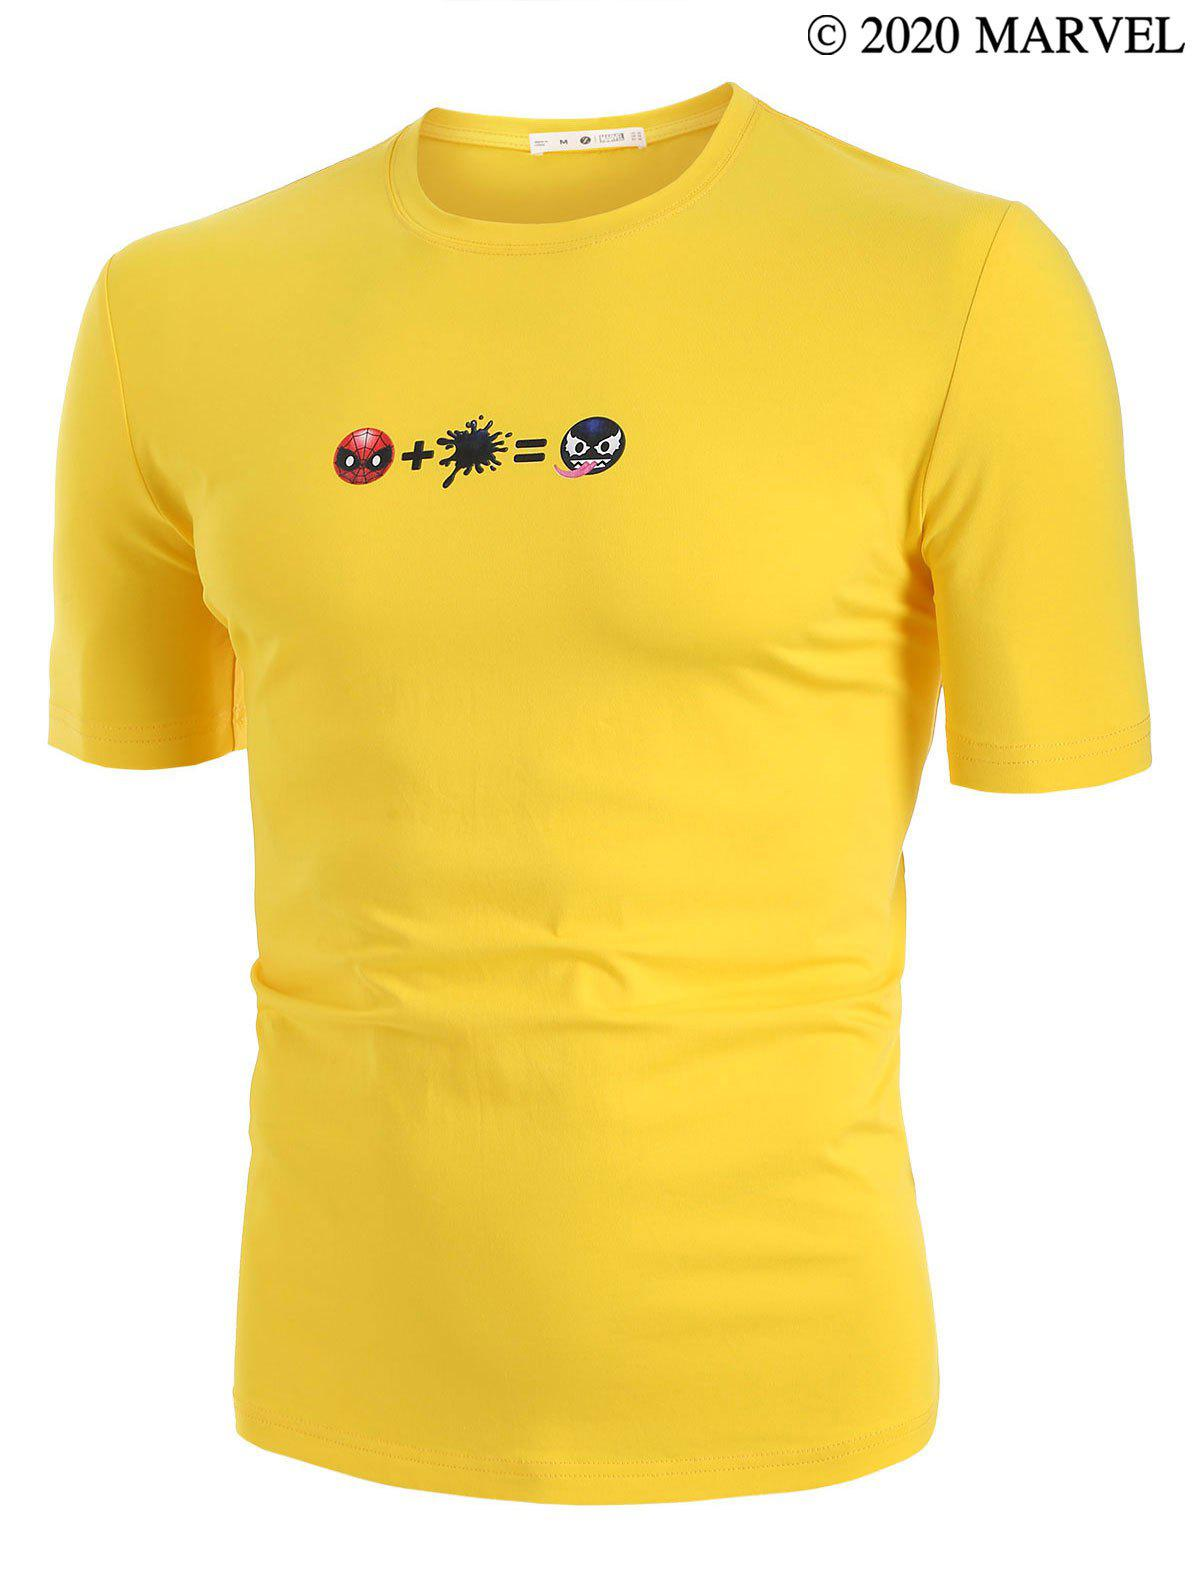 Marvel Spider-Man Venom Print Basic T-shirt - BRIGHT YELLOW S